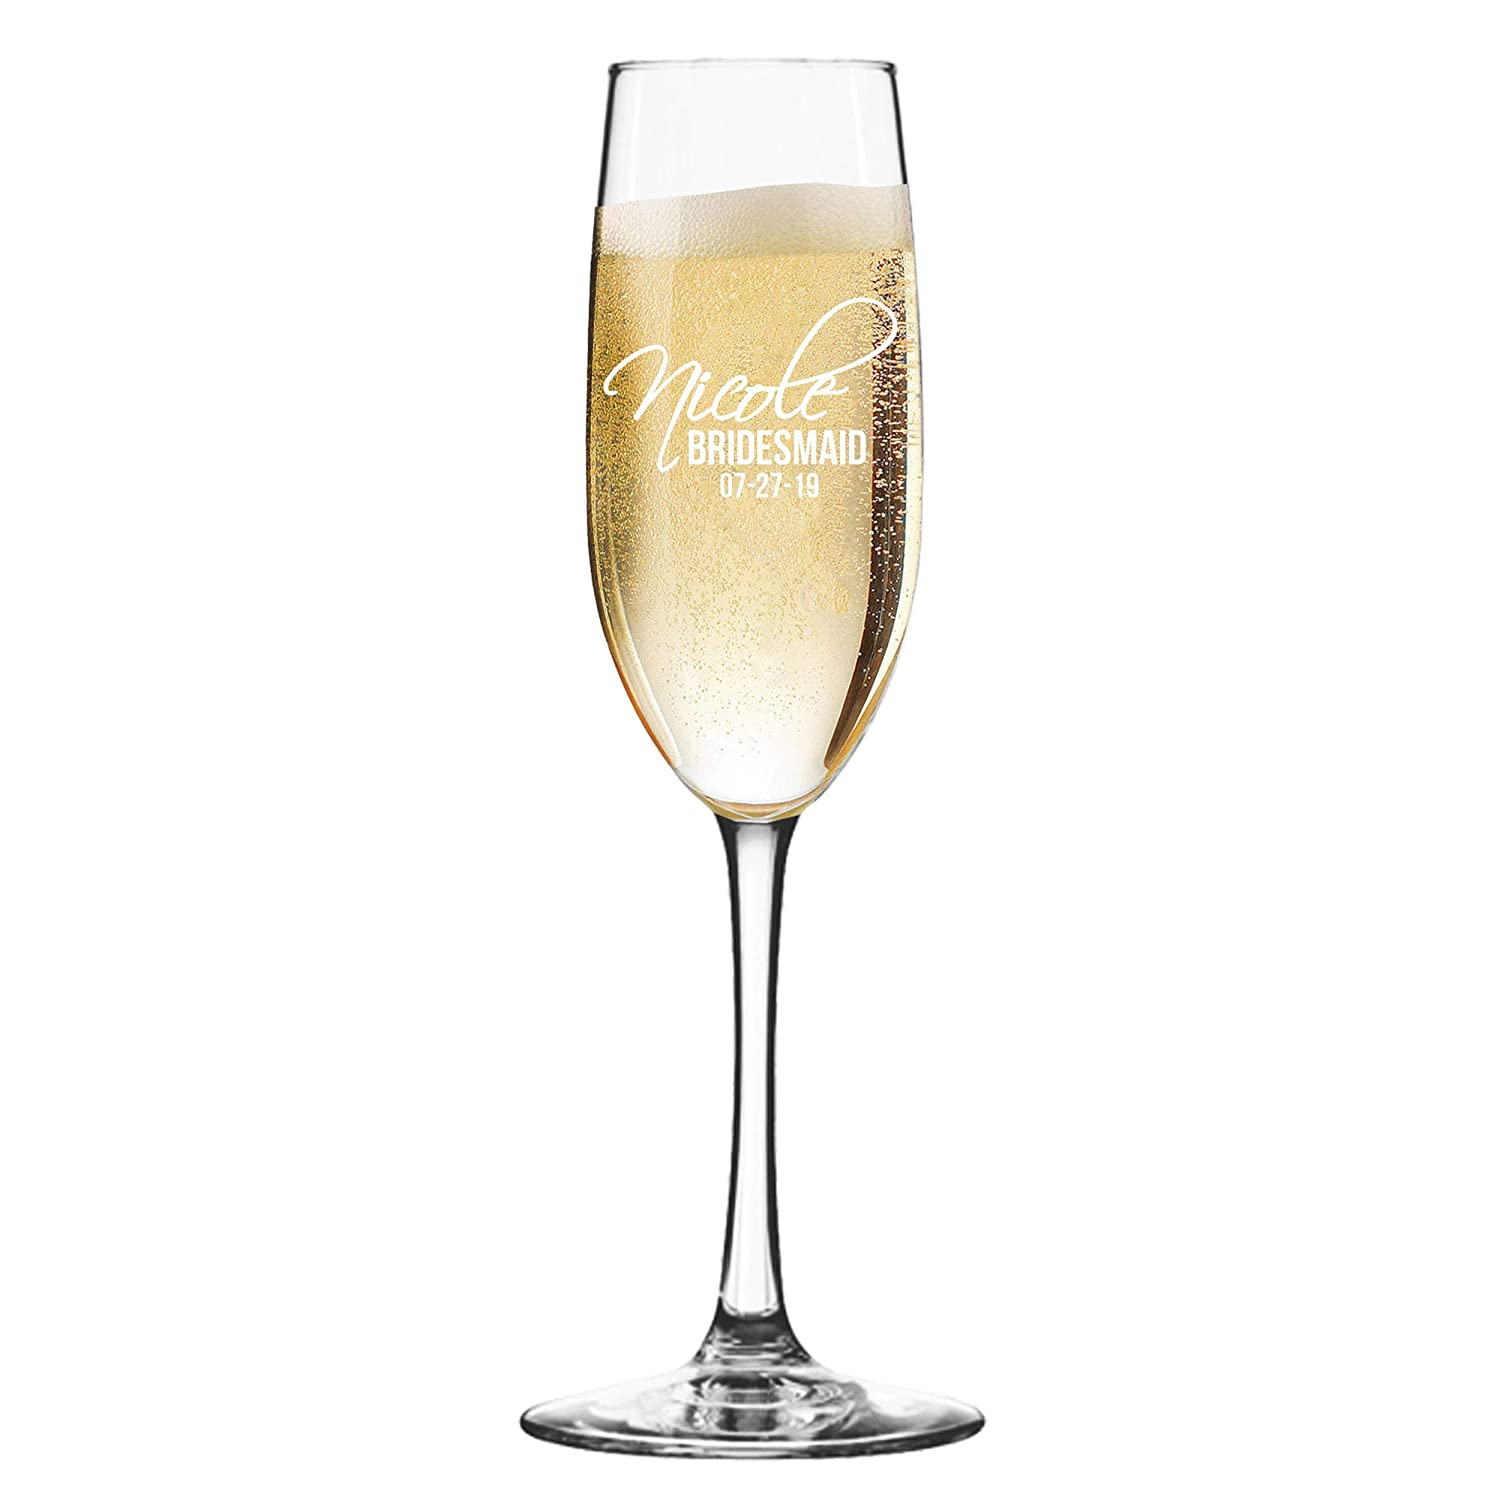 Set of 3, 6, 8, and More Custom Etched Bride, Bridesmaid, Champagne Flutes - Personalized Wedding Party Glass Gifts - Feather Tip Style (1) My Personal Memories MPM0399